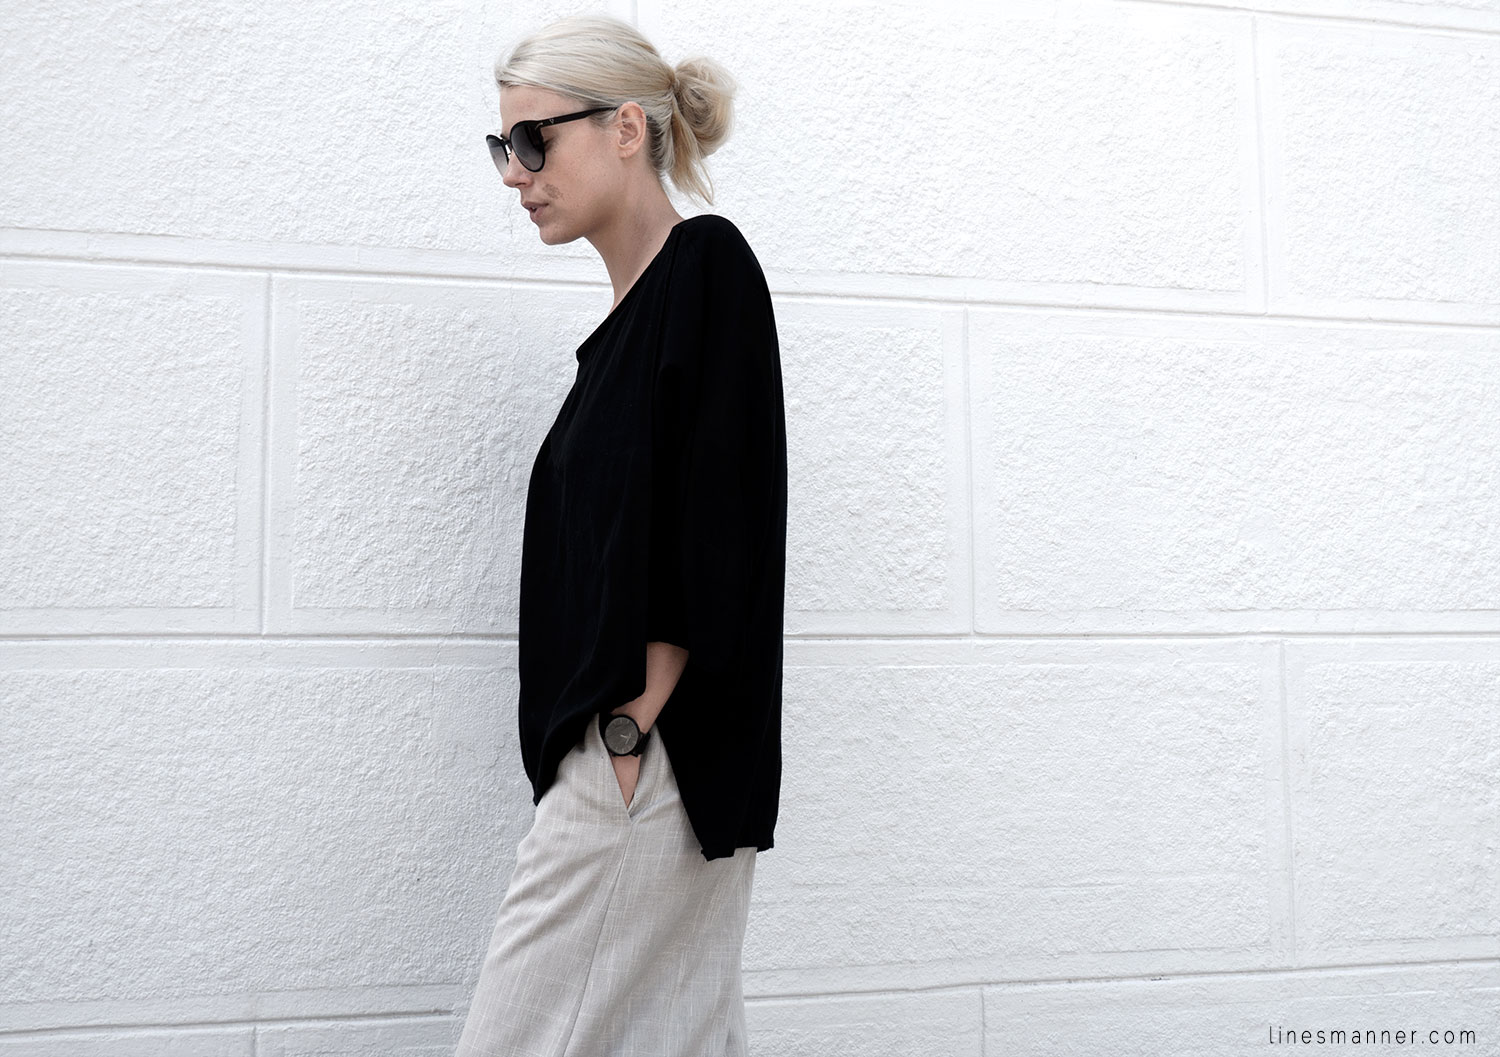 Lines-Manner-Modern-Minimal-Effortless-Casual-Wide_Leg_Culotte-Coidlyn_Wight-Draped-Coton-Linen-Sustainable-Slow_Fashion-Neutrals-Structure-Volume-Fluid-Simplicity-Details-12